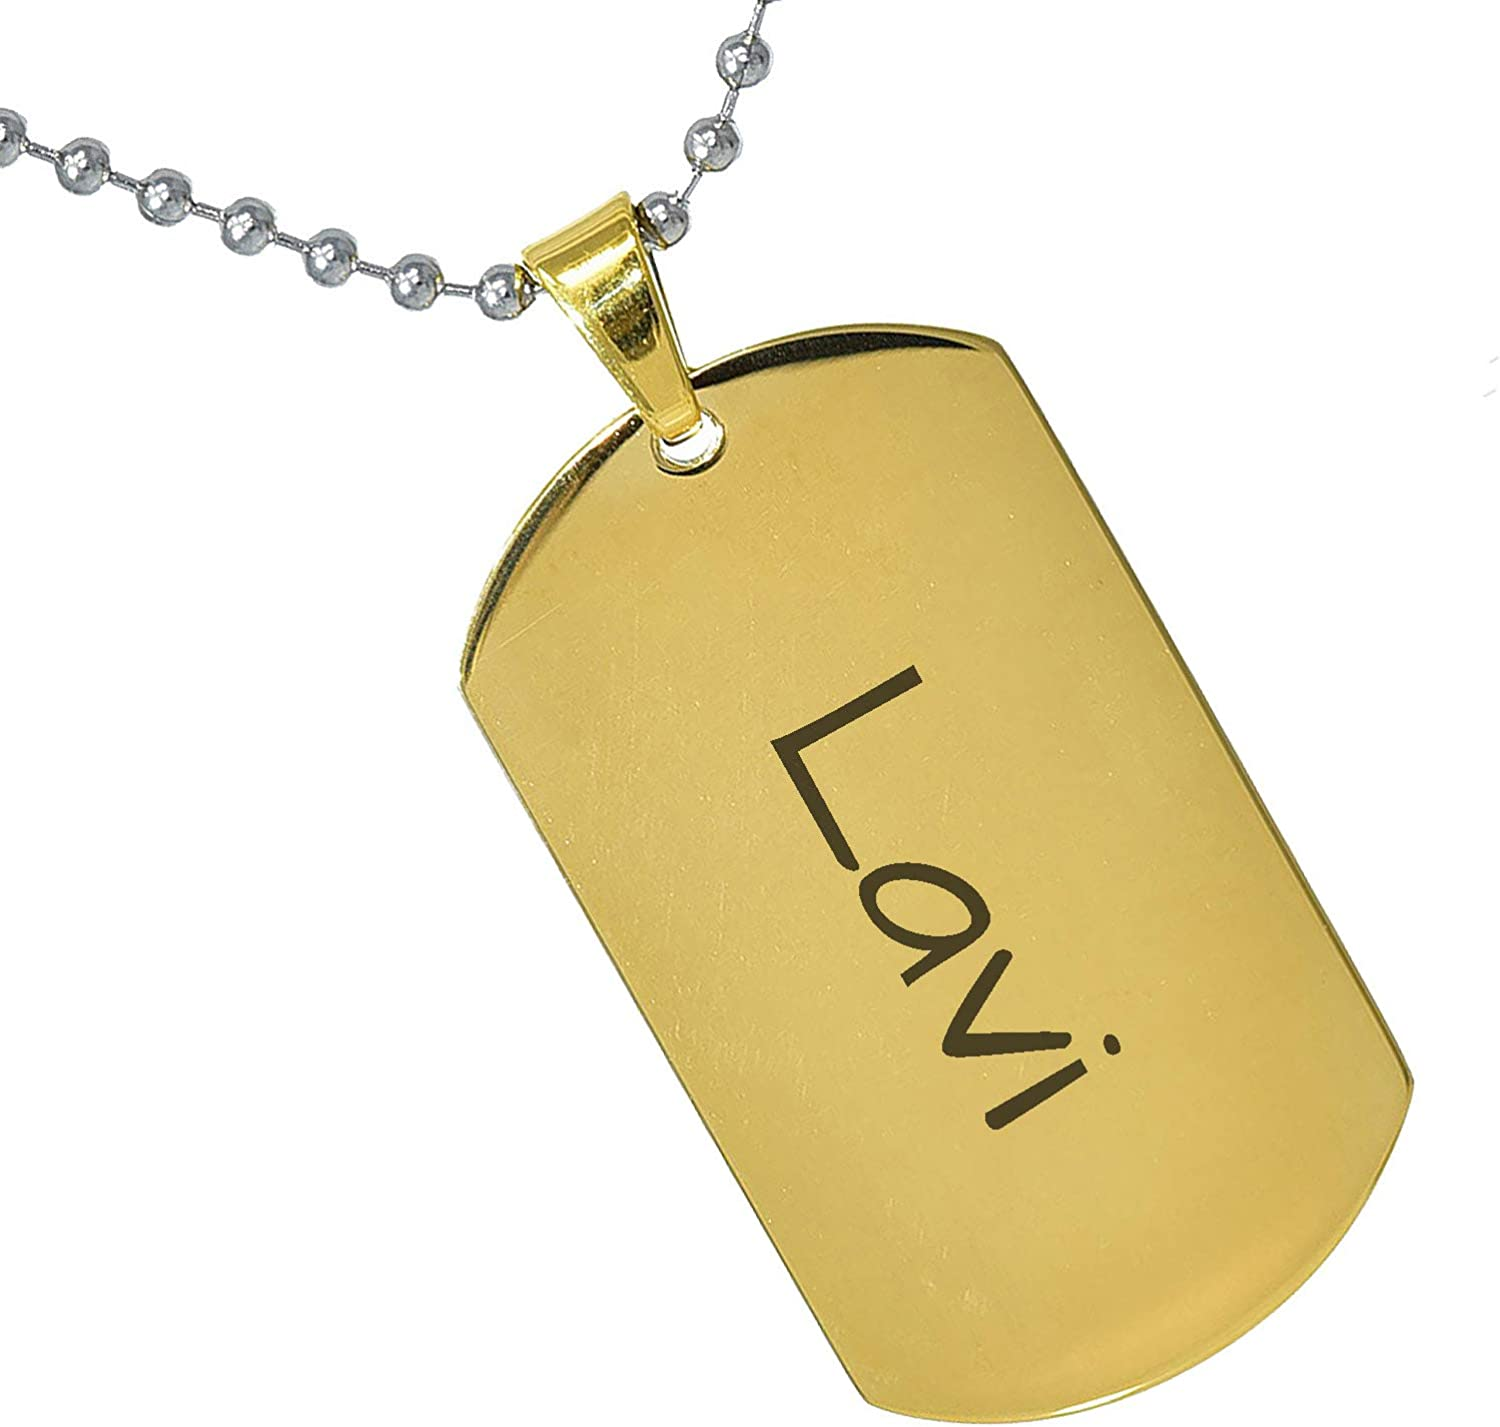 Stainless Steel Silver Gold Black Rose Gold Color Baby Name Lavi Engraved Personalized Gifts For Son Daughter Boyfriend Girlfriend Initial Customizable Pendant Necklace Dog Tags 24 Ball Chain